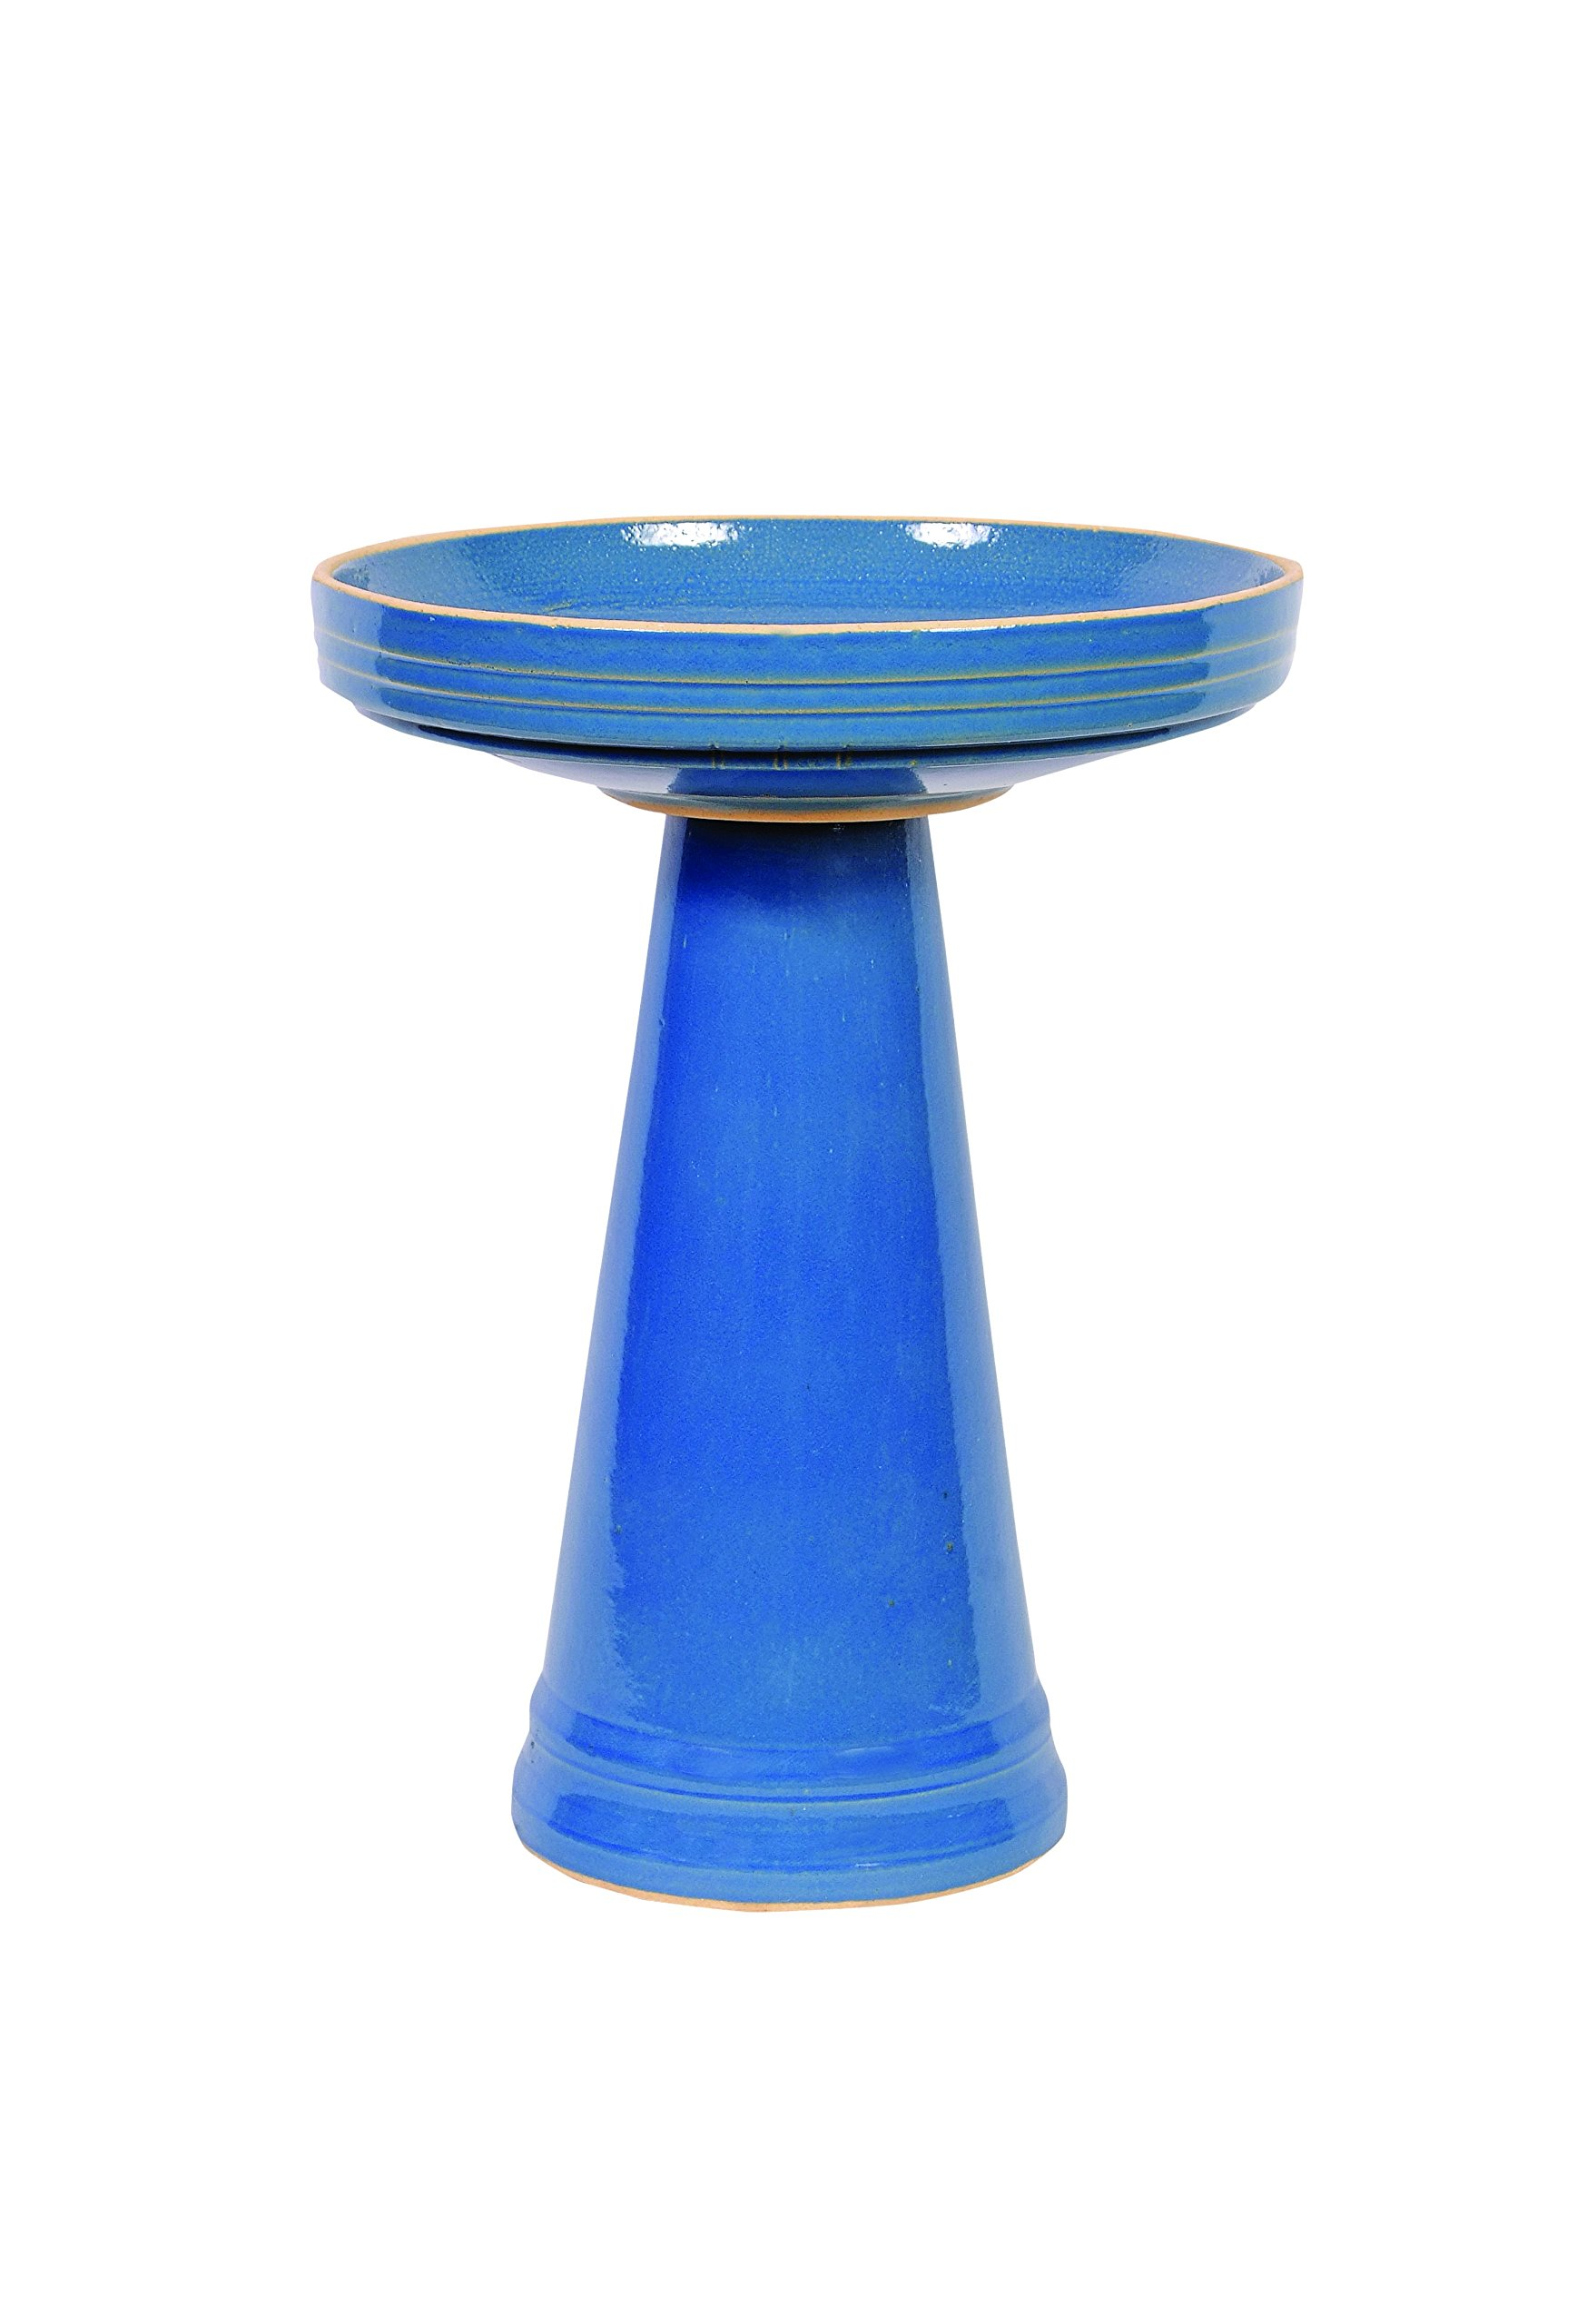 Birds Choice Burley Clay Simple Elegance Bellflower Blue Bird Bath, Medium